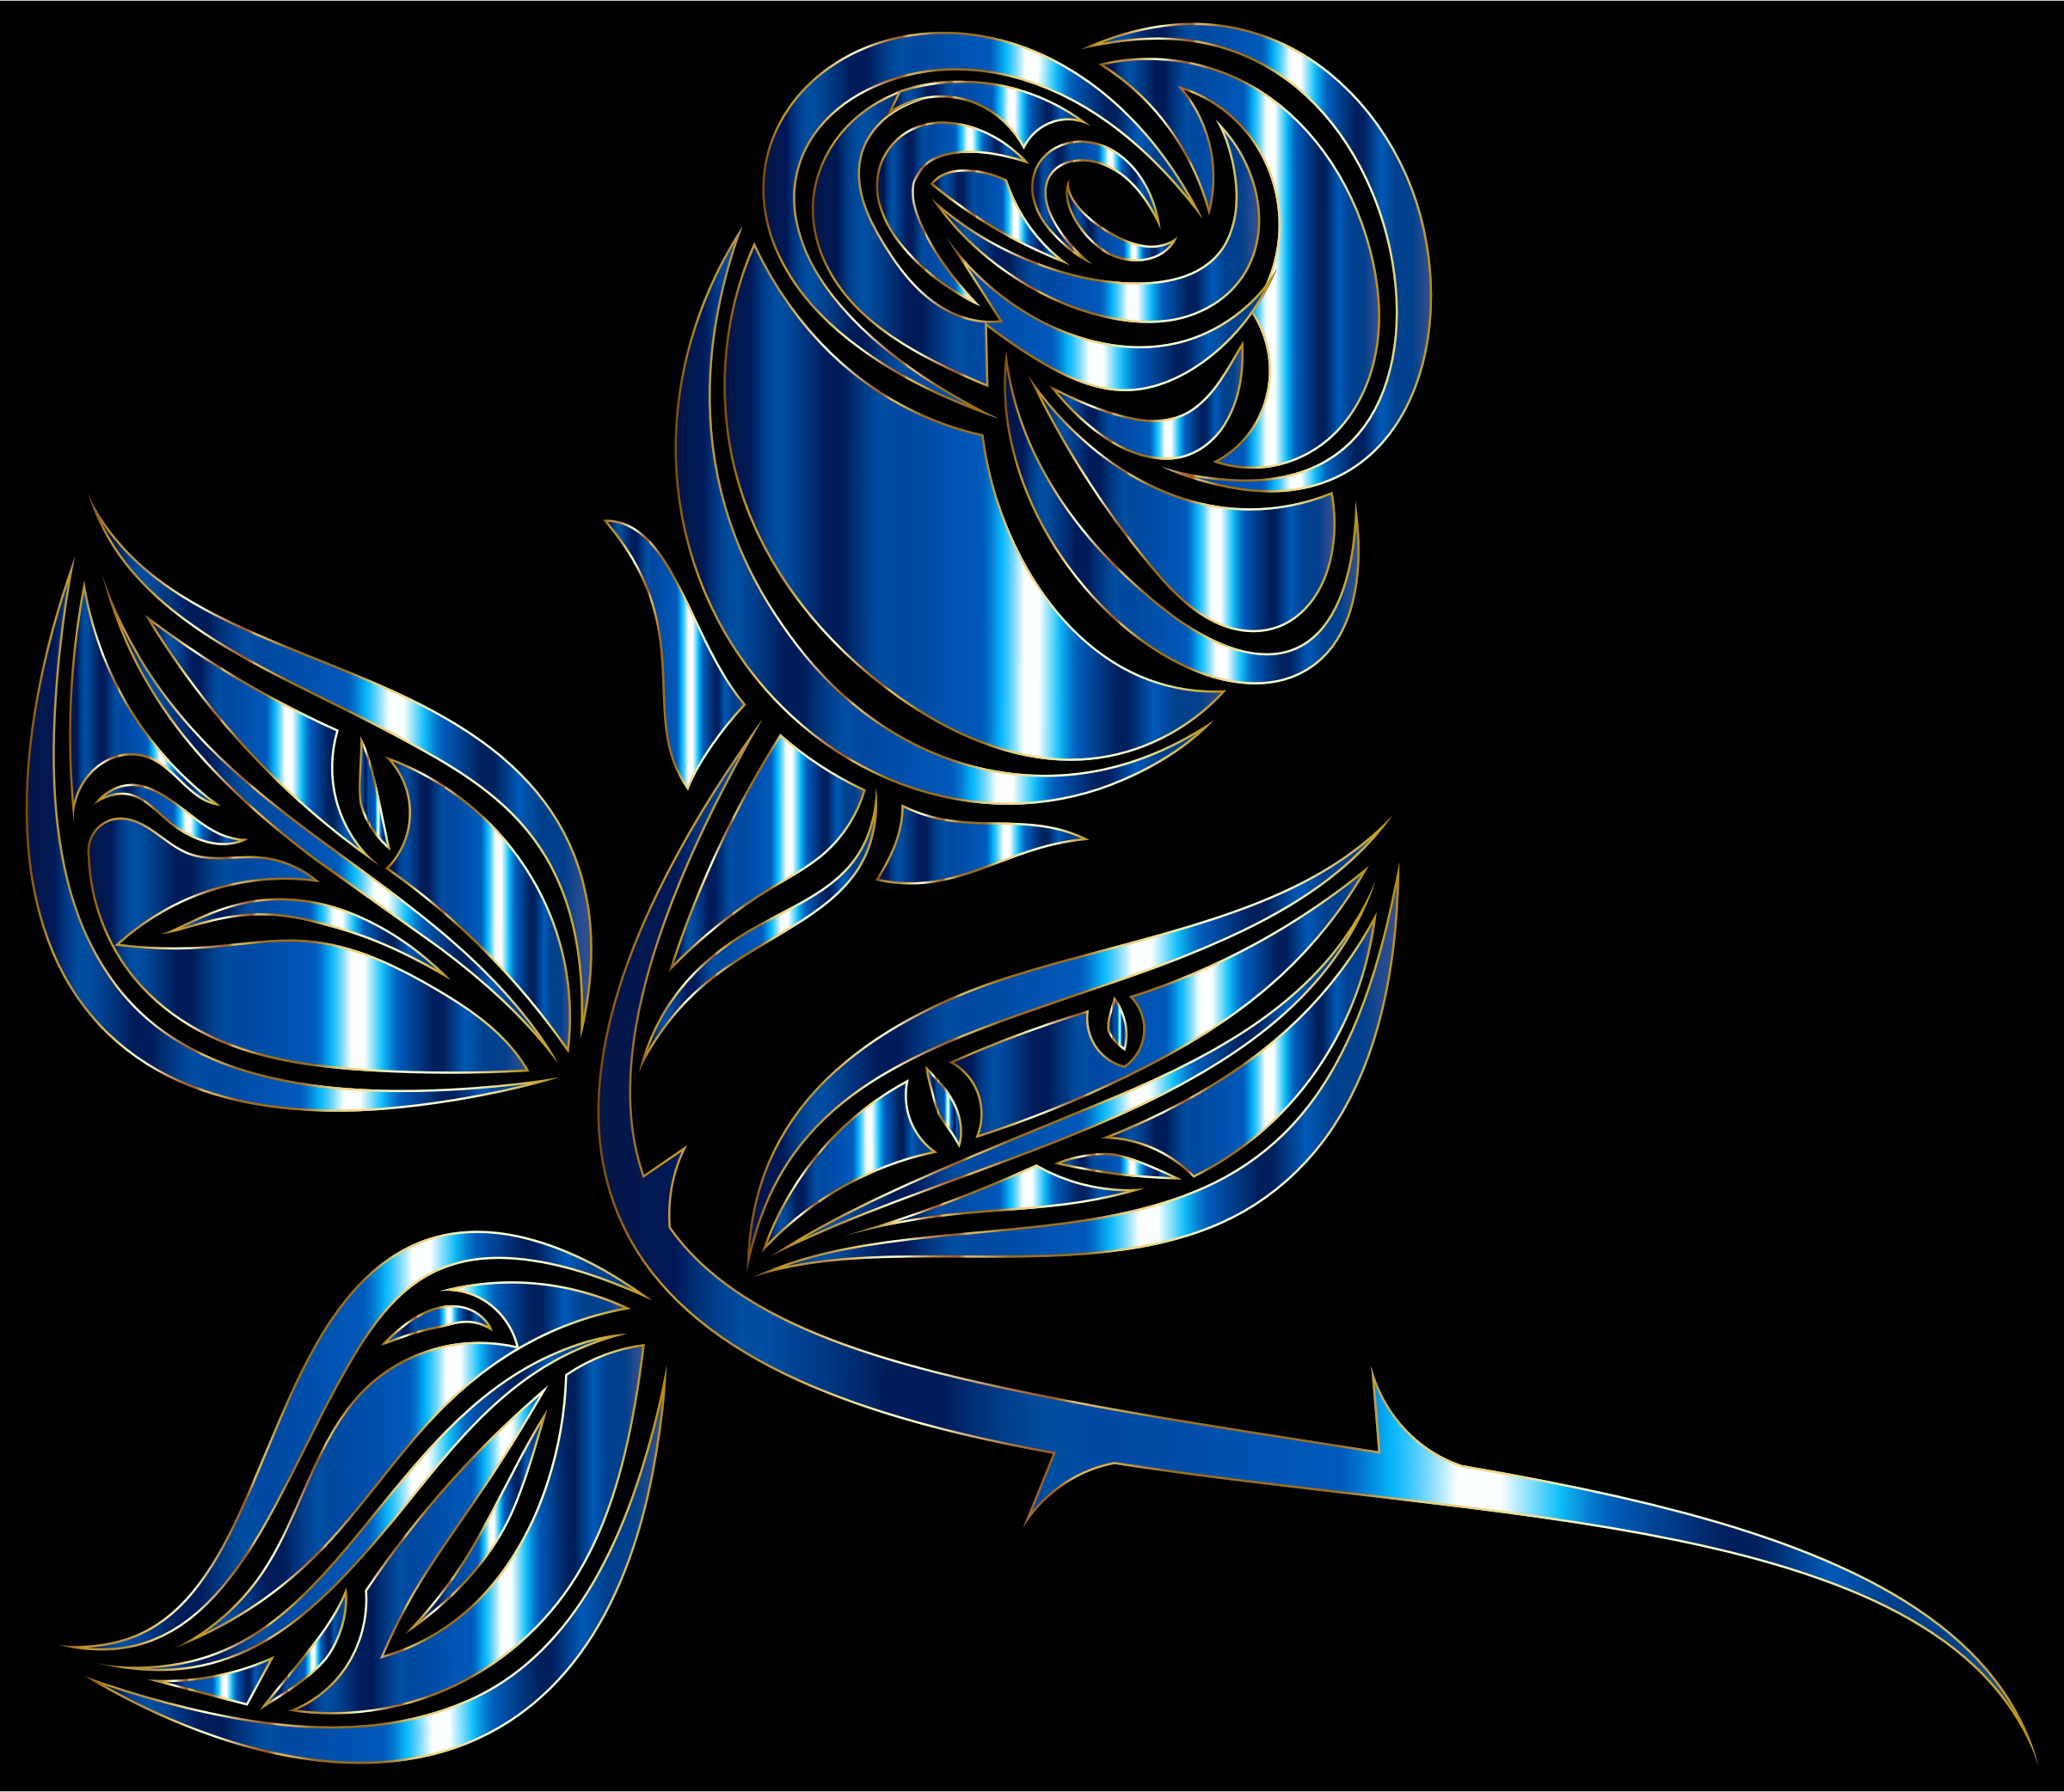 Stylized Rose Extended 5 by GDJ